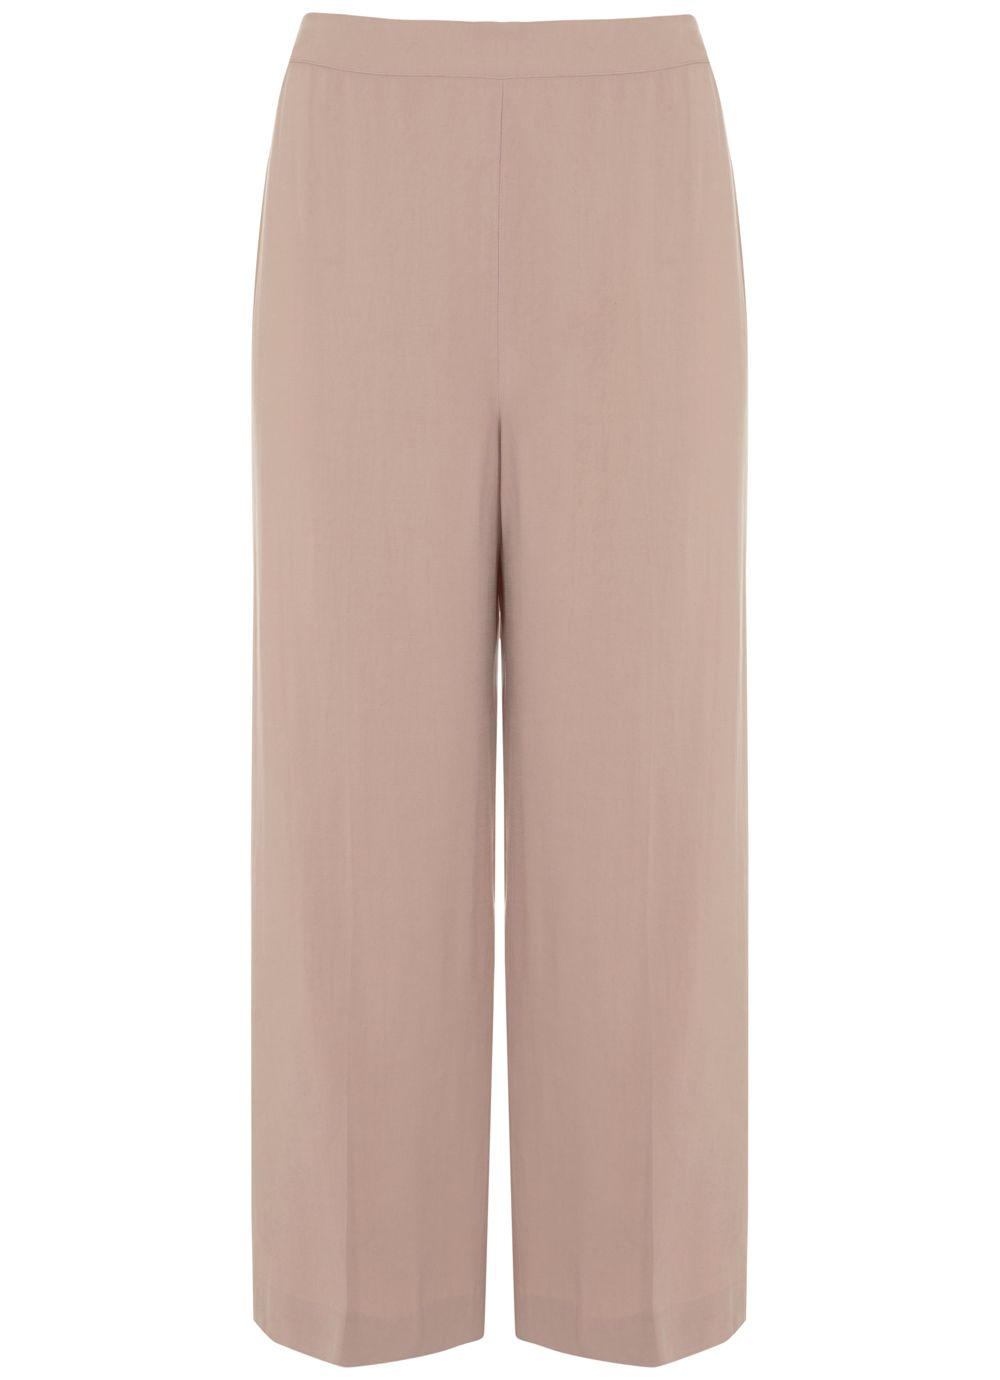 Mint Velvet Blossom Wide Leg Crop Trouser, Pink